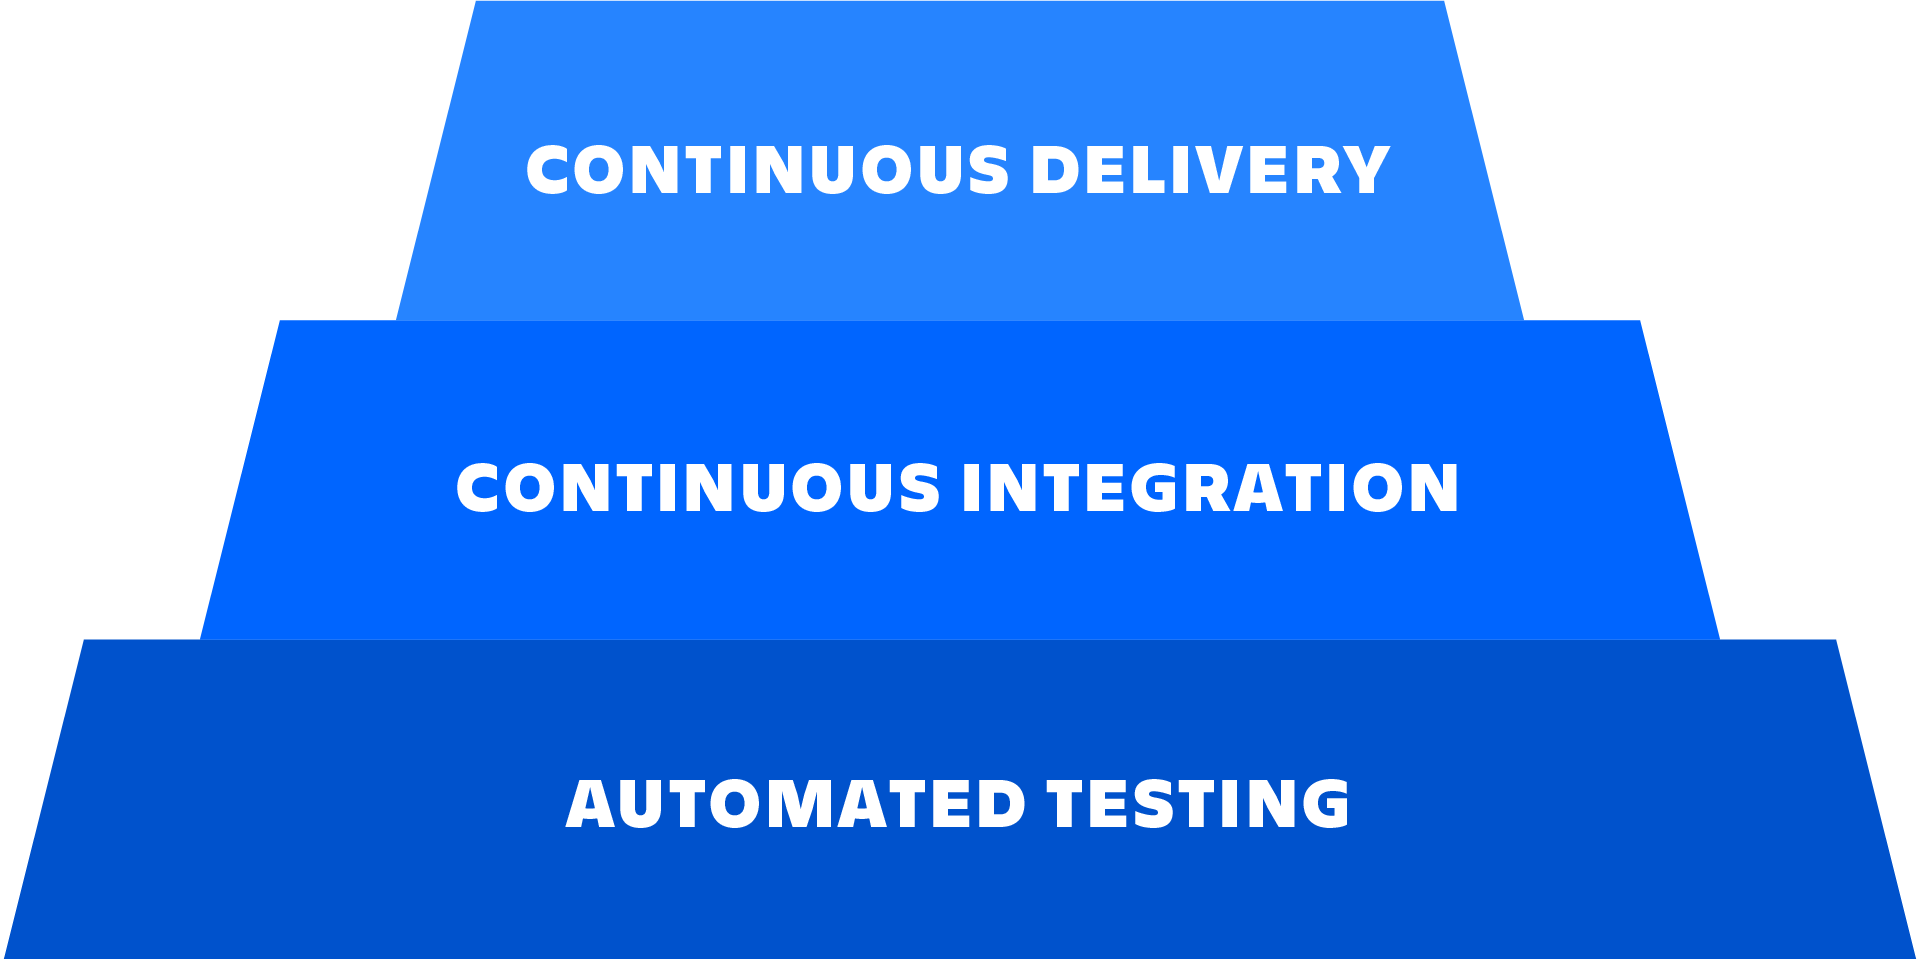 A diagram describing the relationship between automated testing, continuous integration, and continuous delivery.